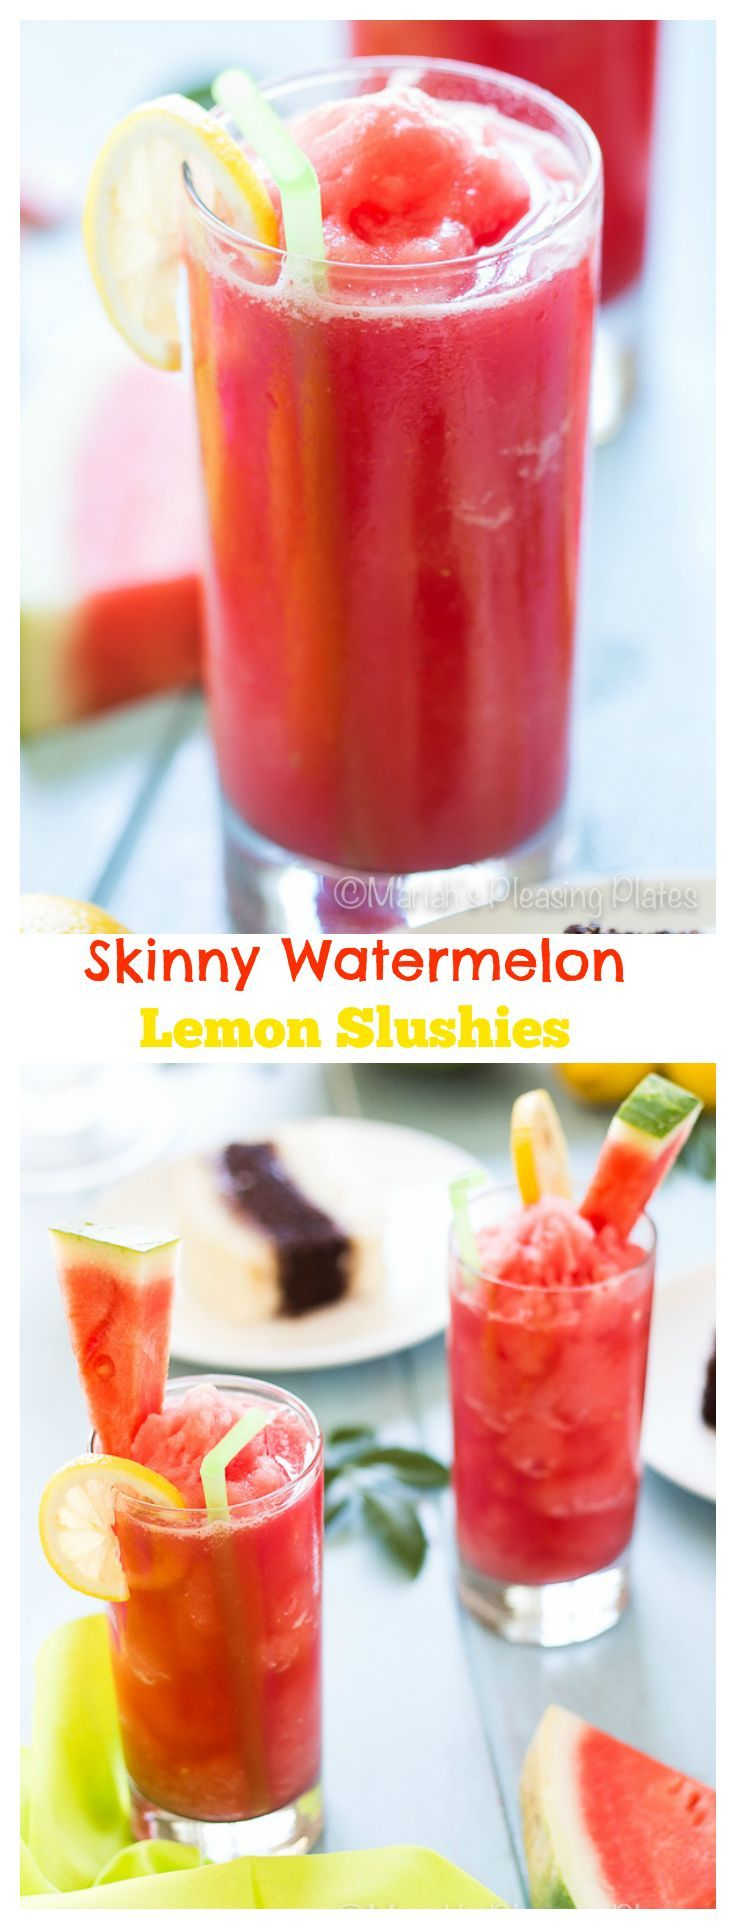 These Skinny Watermelon Lemon Slushies are the perfect way to cool down on a hot summer's day. Thanks to no sugar added, you will be sipping these 3 ingredient treats guilt free!